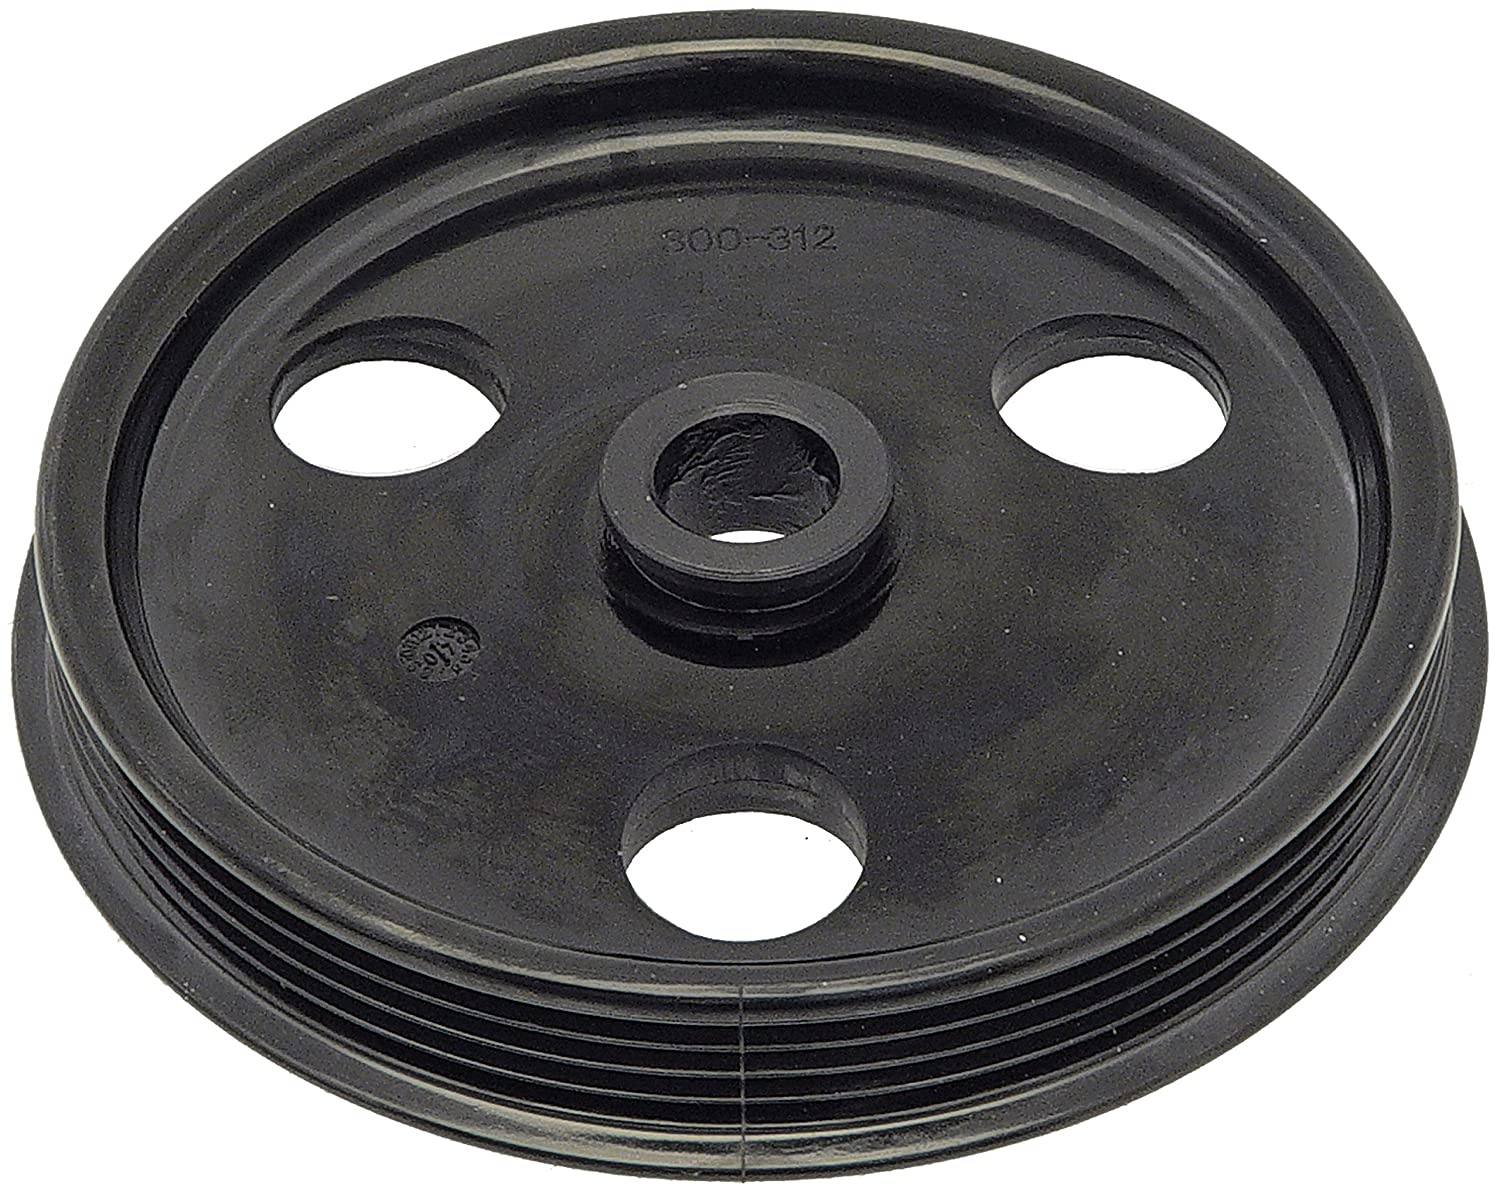 Dorman 300-312 Power Steering Pulley Dorman - OE Solutions